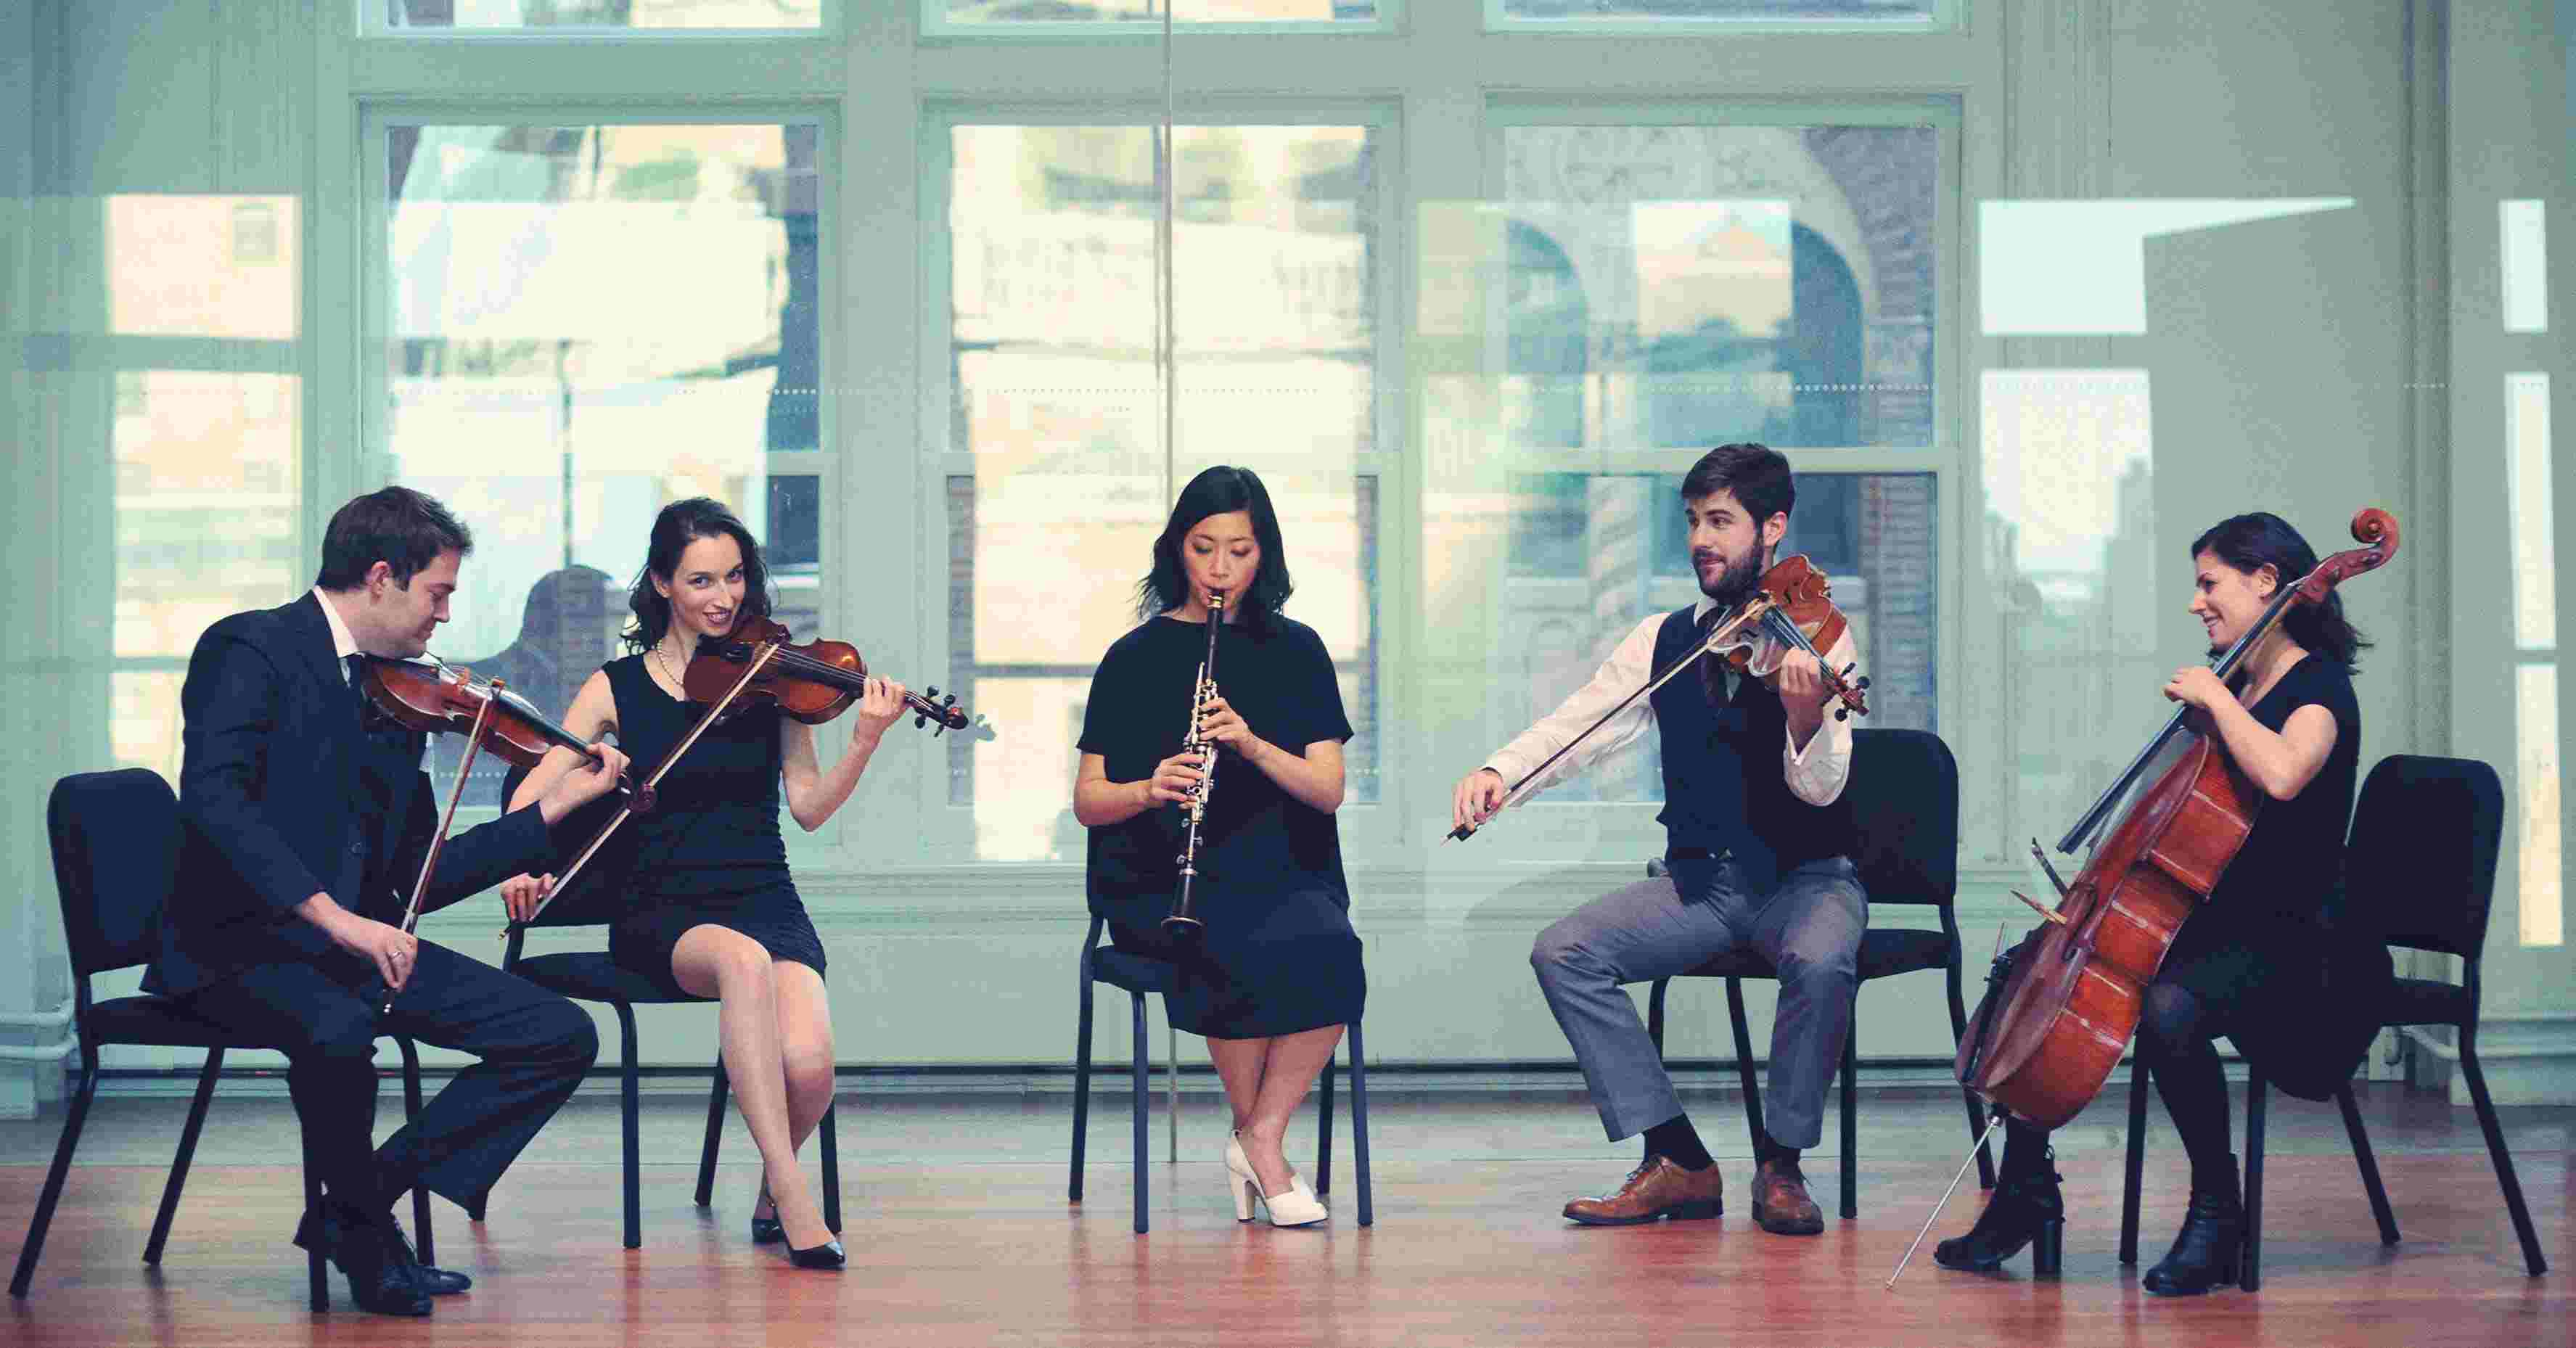 the Decoda chamber music collective plays their instruments in a concert hall